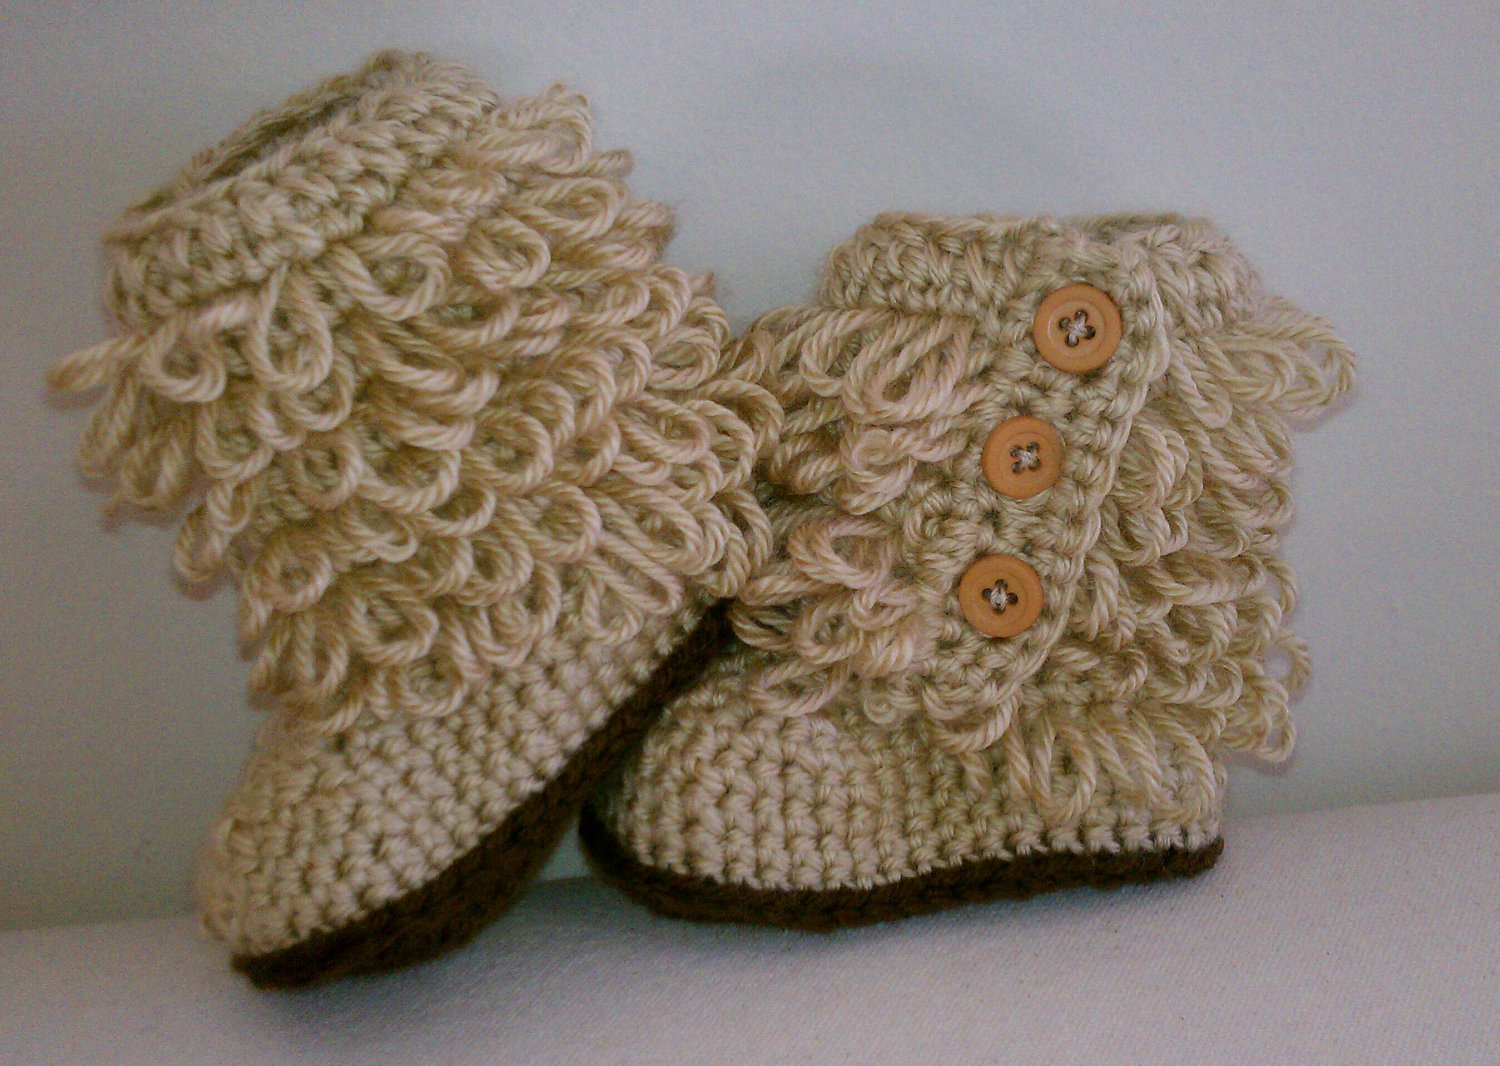 Crochet Boots Best Of Crochet Baby Ugg Inspired Boots Booties Tan Fall Winter Baby Of Brilliant 43 Photos Crochet Boots